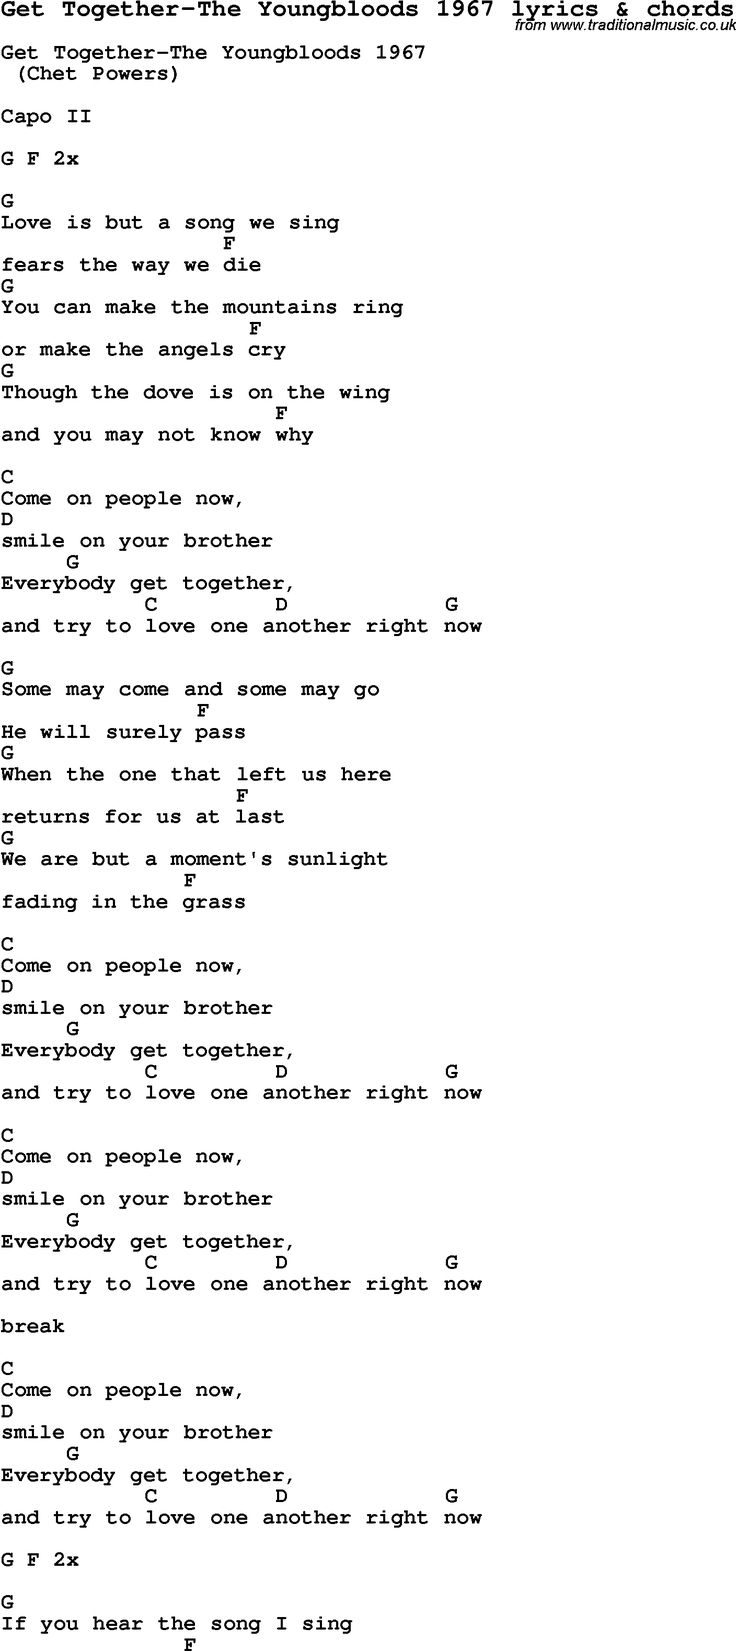 5450 best guitar images on pinterest guitar music notes and love song lyrics for get together the youngbloods 1967 with chords for ukulele hexwebz Choice Image